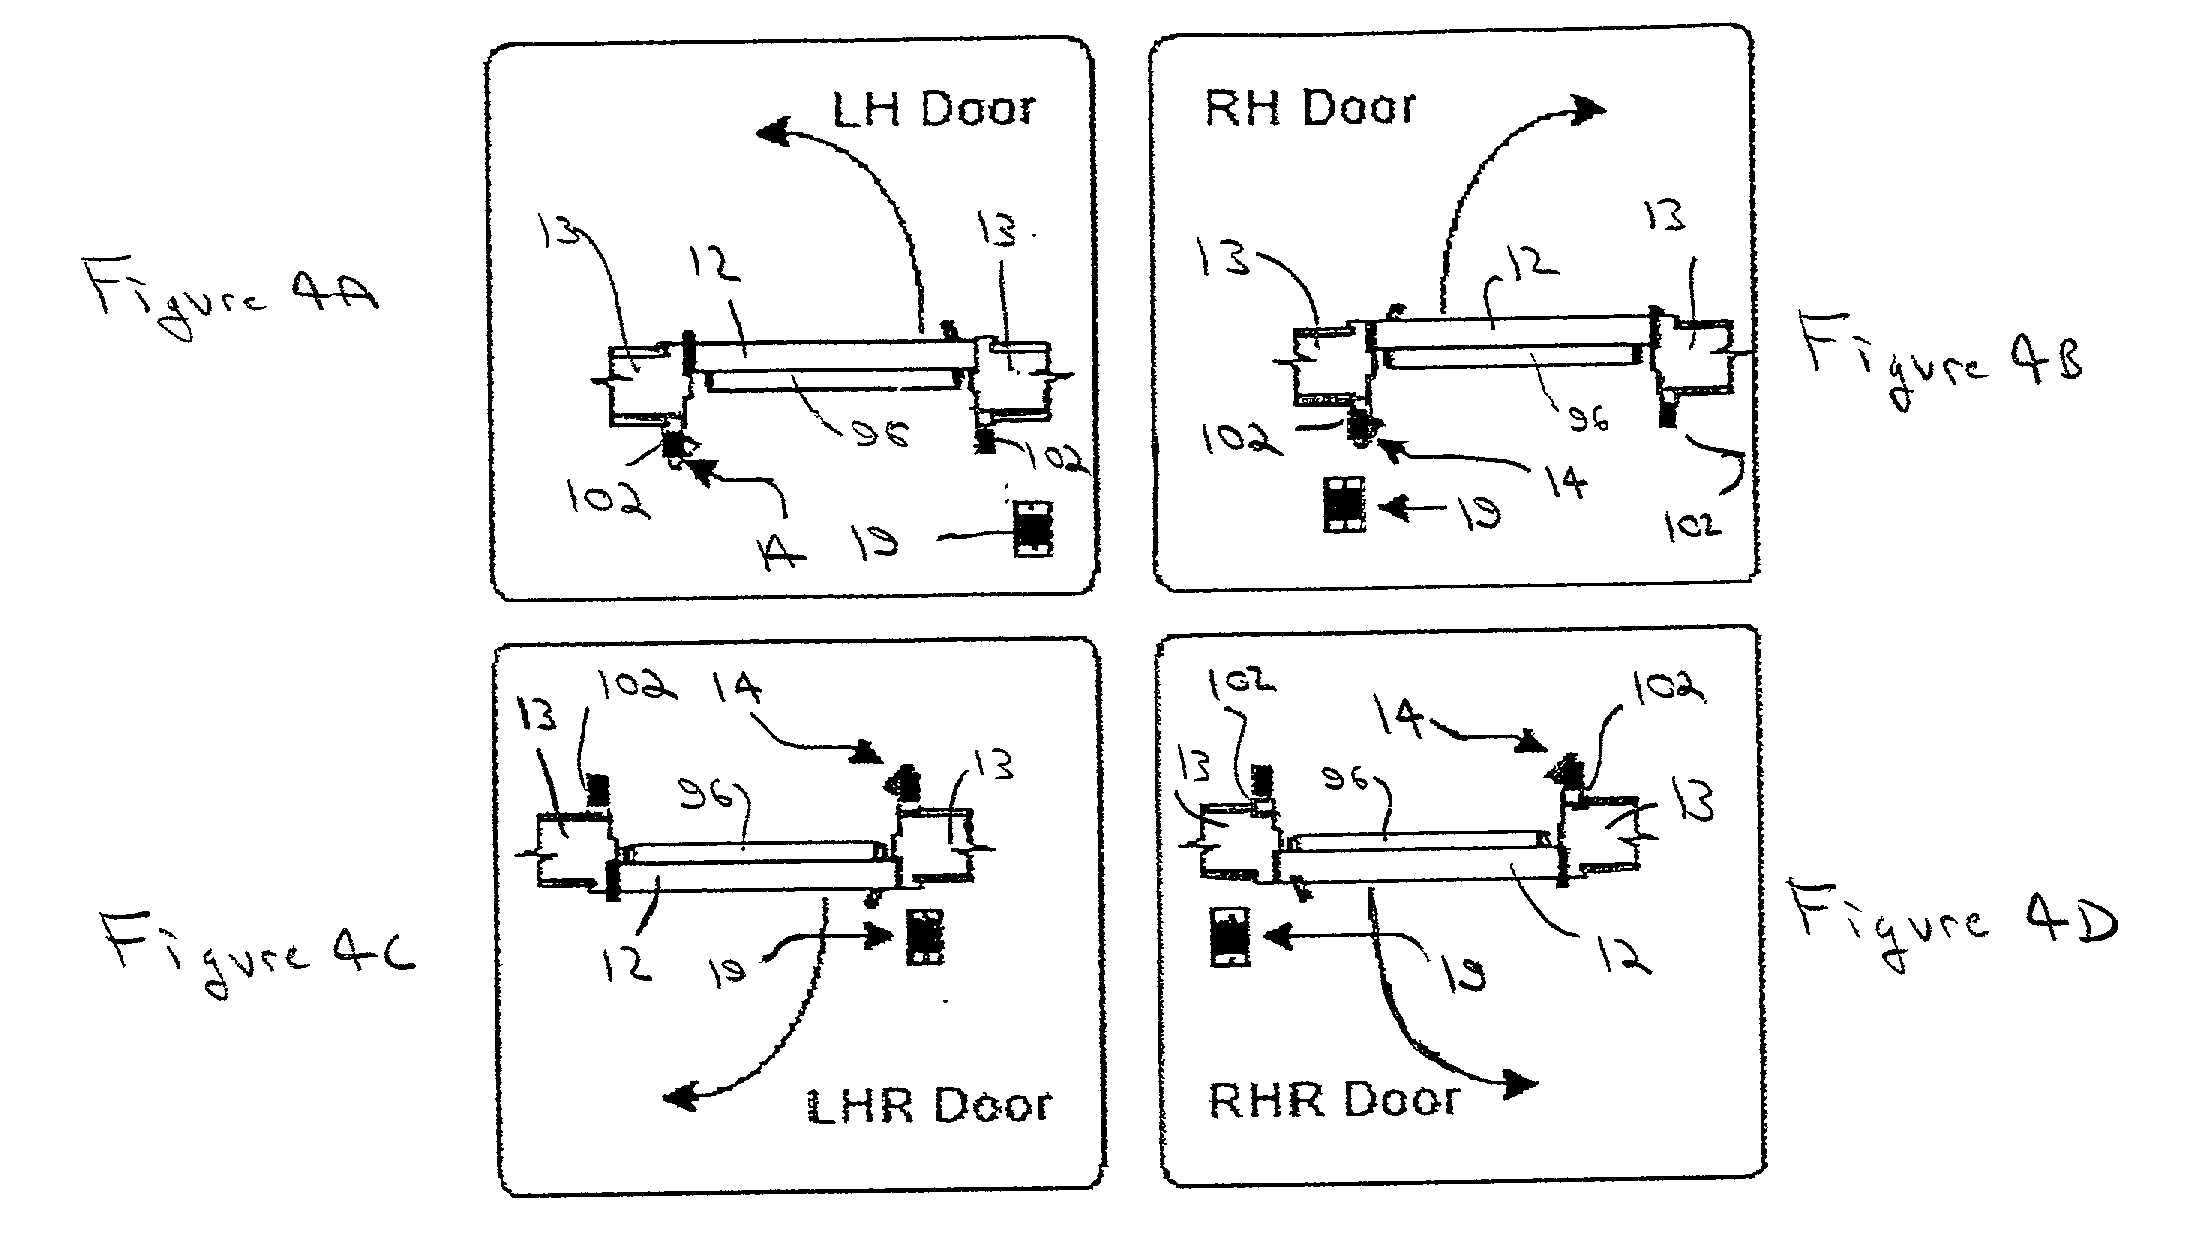 US20020067259 together with Heath Zenith Motion Sensor Light Wiring Diagram in addition Knowledge Is Power Access Control And Circuits also EAP 5D1Q furthermore Joints And Links Of Robot fig4 301895257. on access control motion sensor